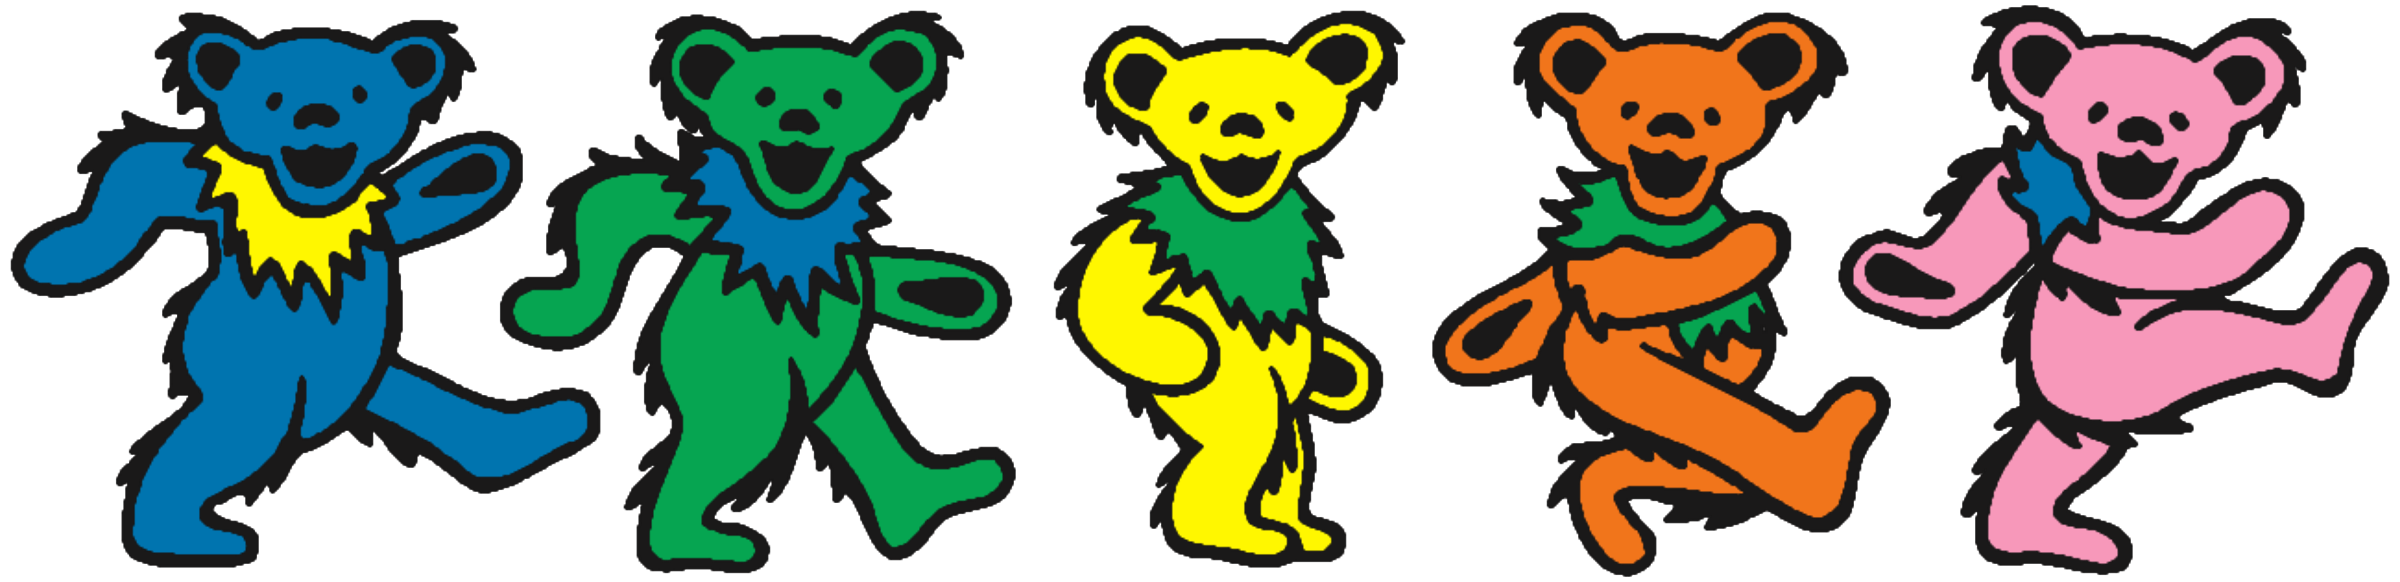 Grateful dead dancing bear png. After how much y